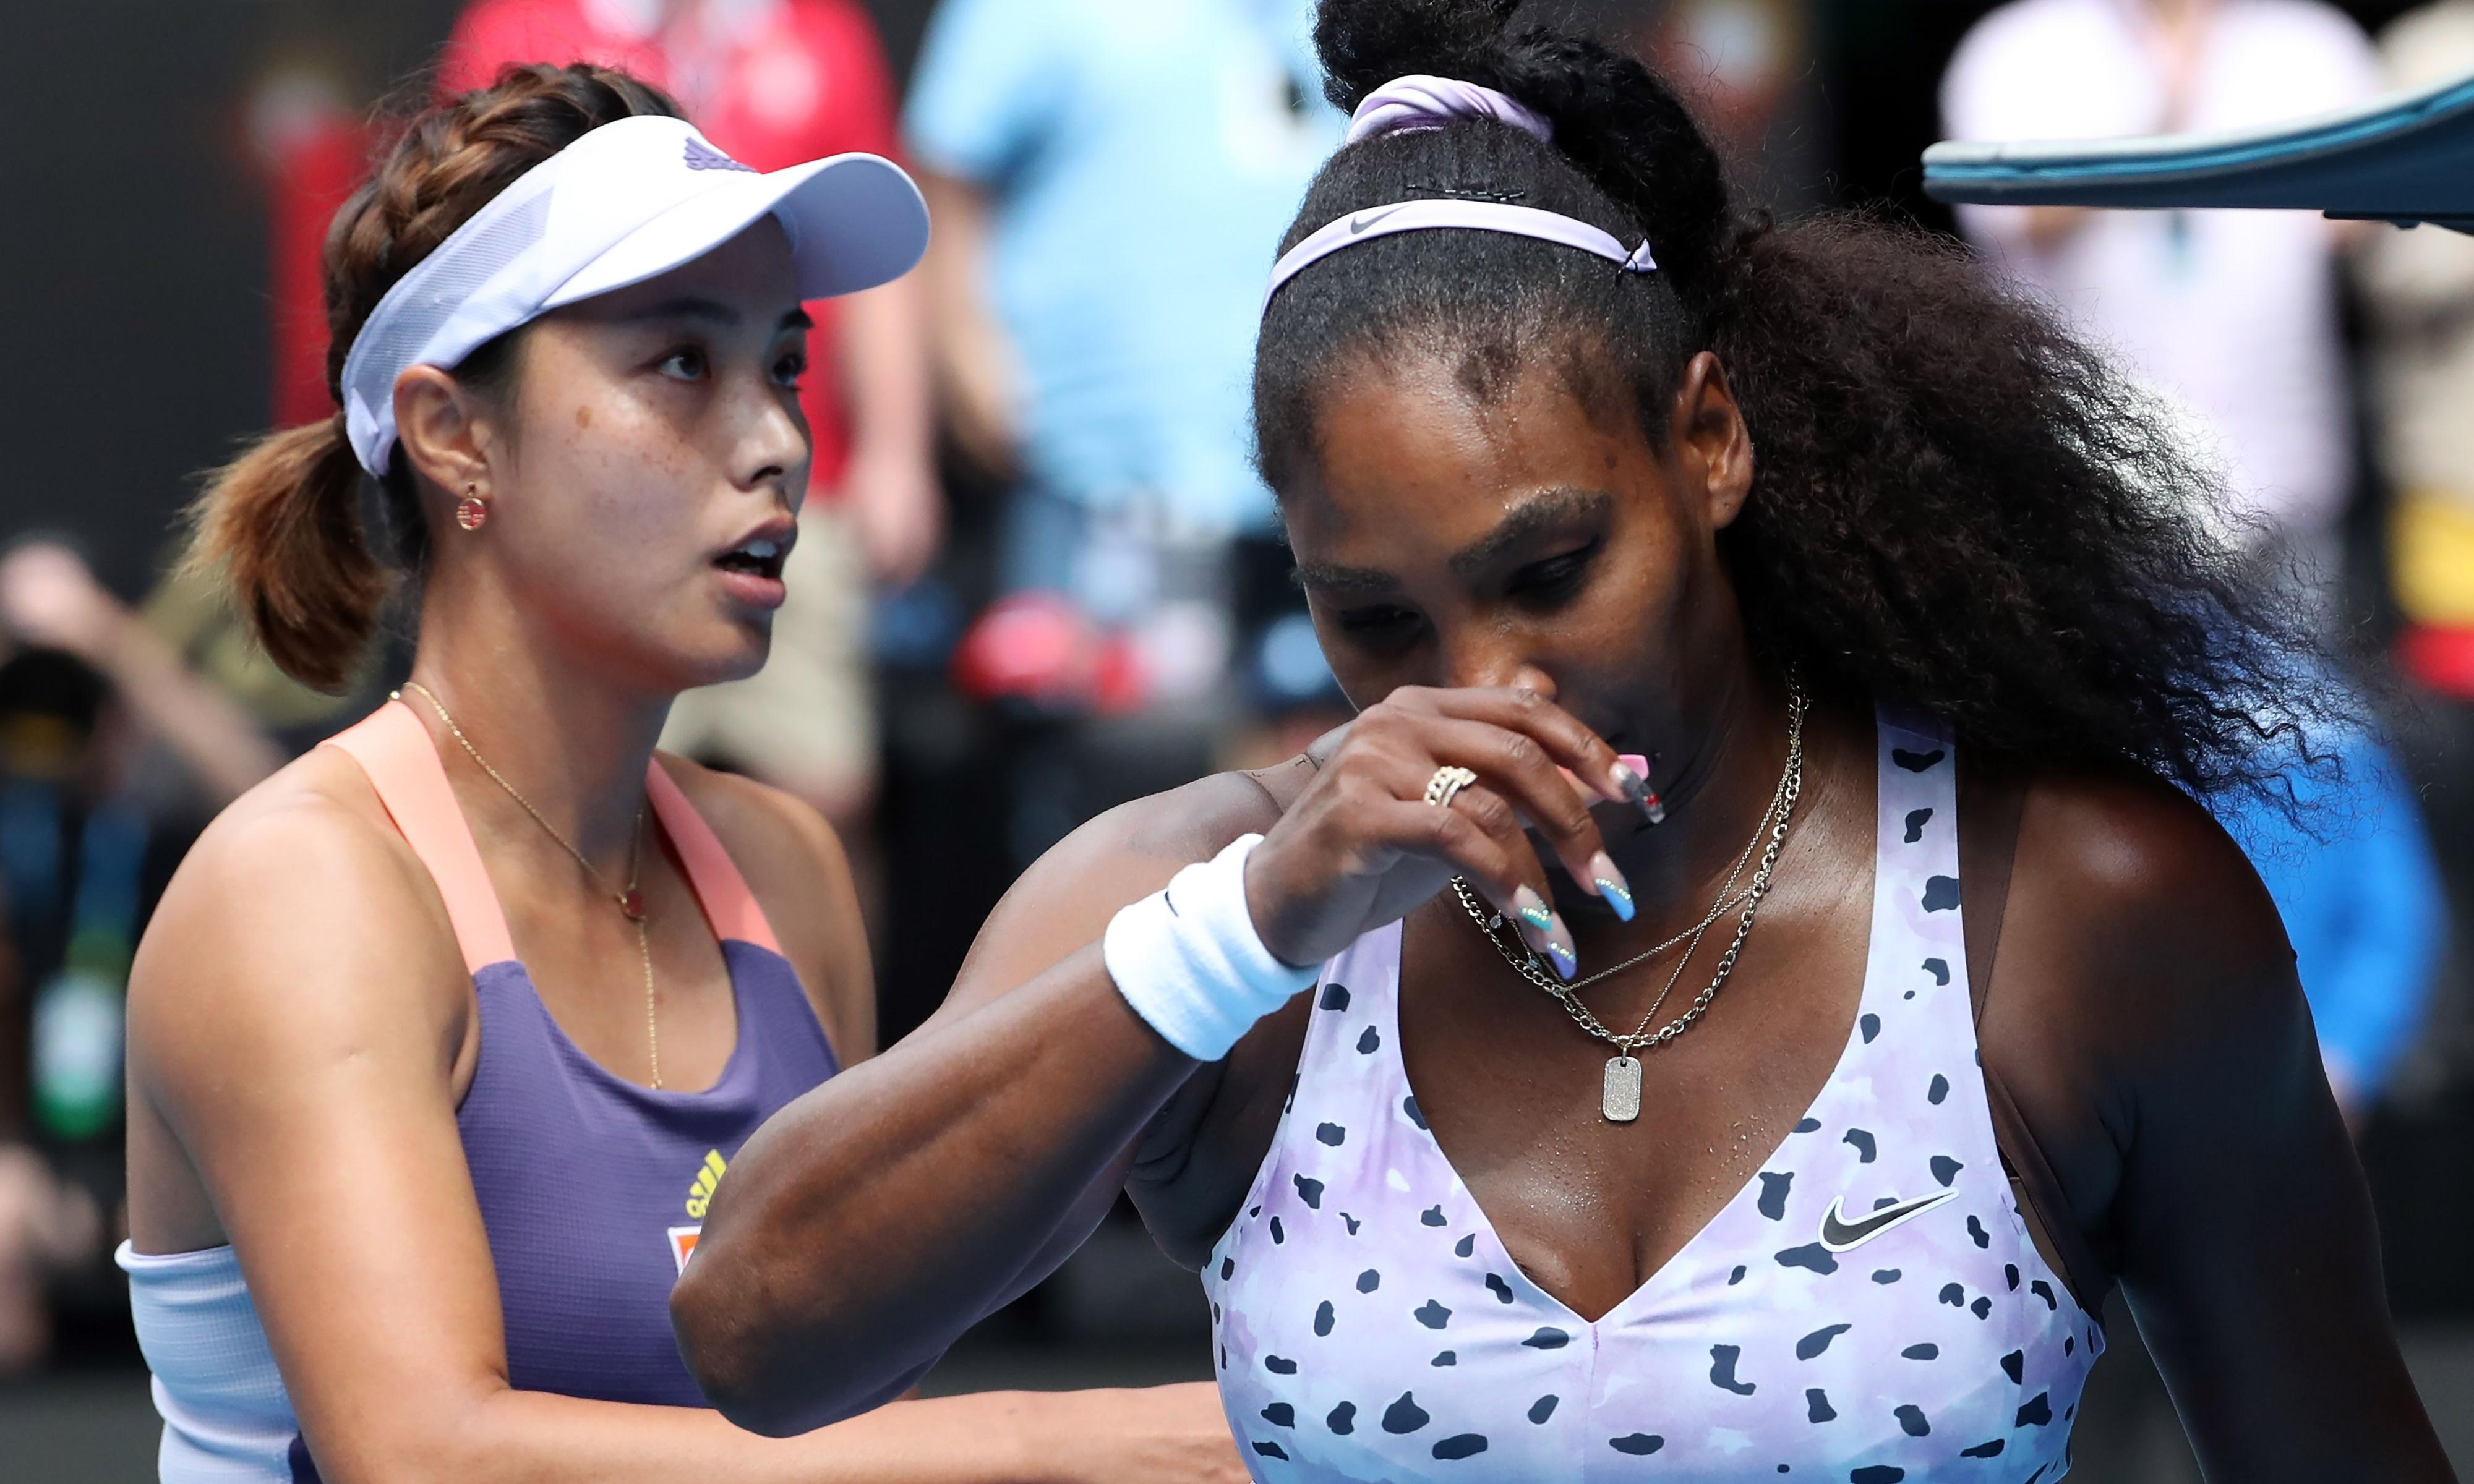 Serena Williams and Wozniacki share their sorrow after Australian Open exits